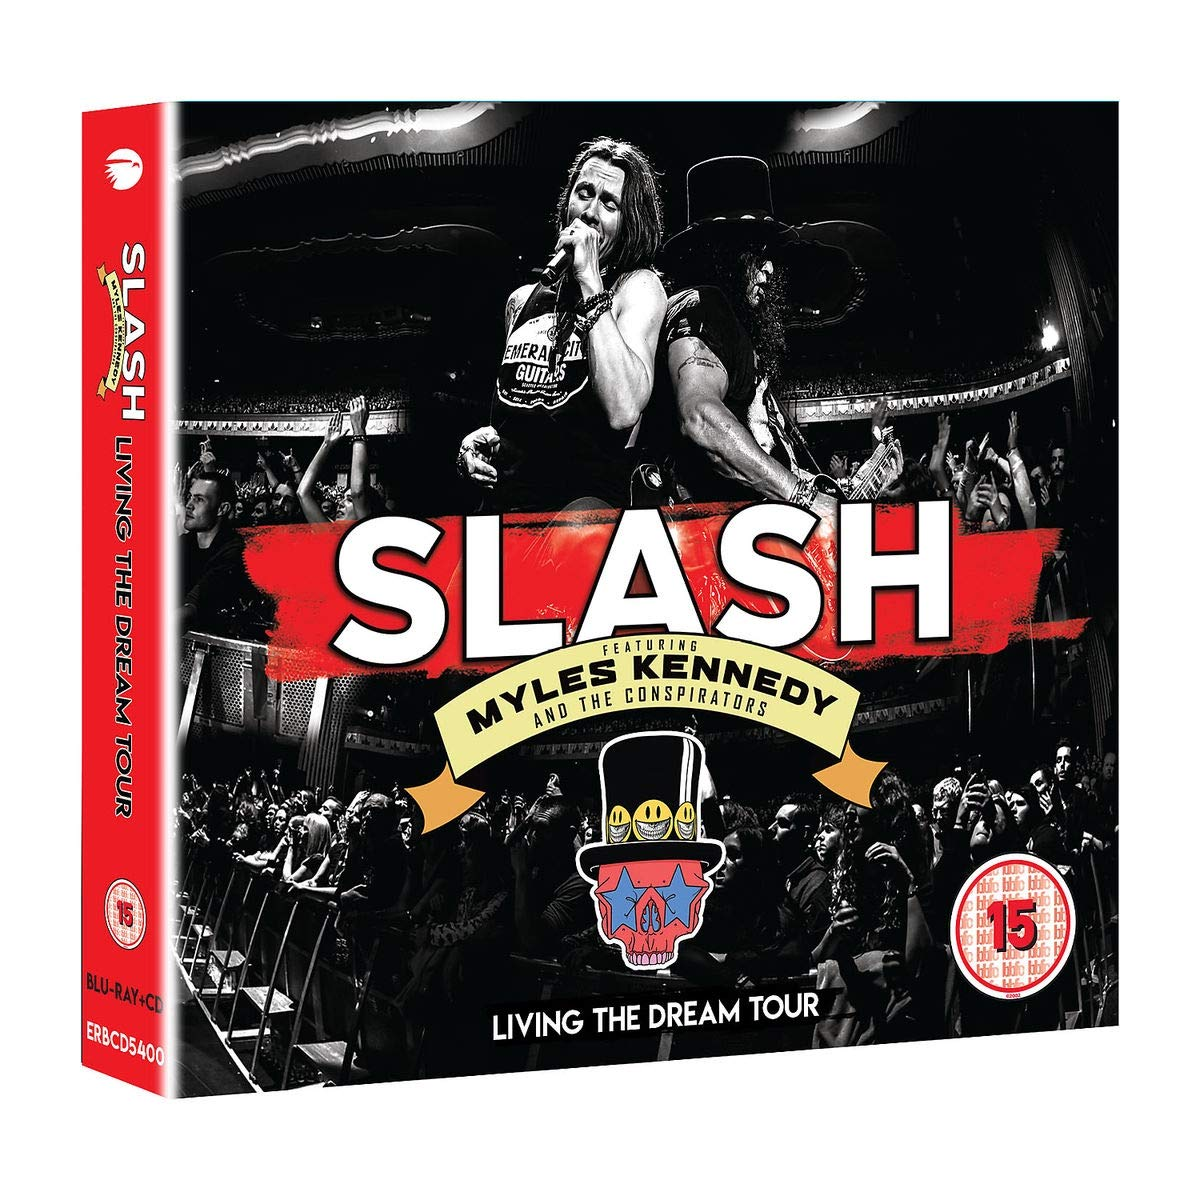 CD Shop - SLAH/MYLES KENNEDY AND.. LIVING THE DREAM TOUR/2CD